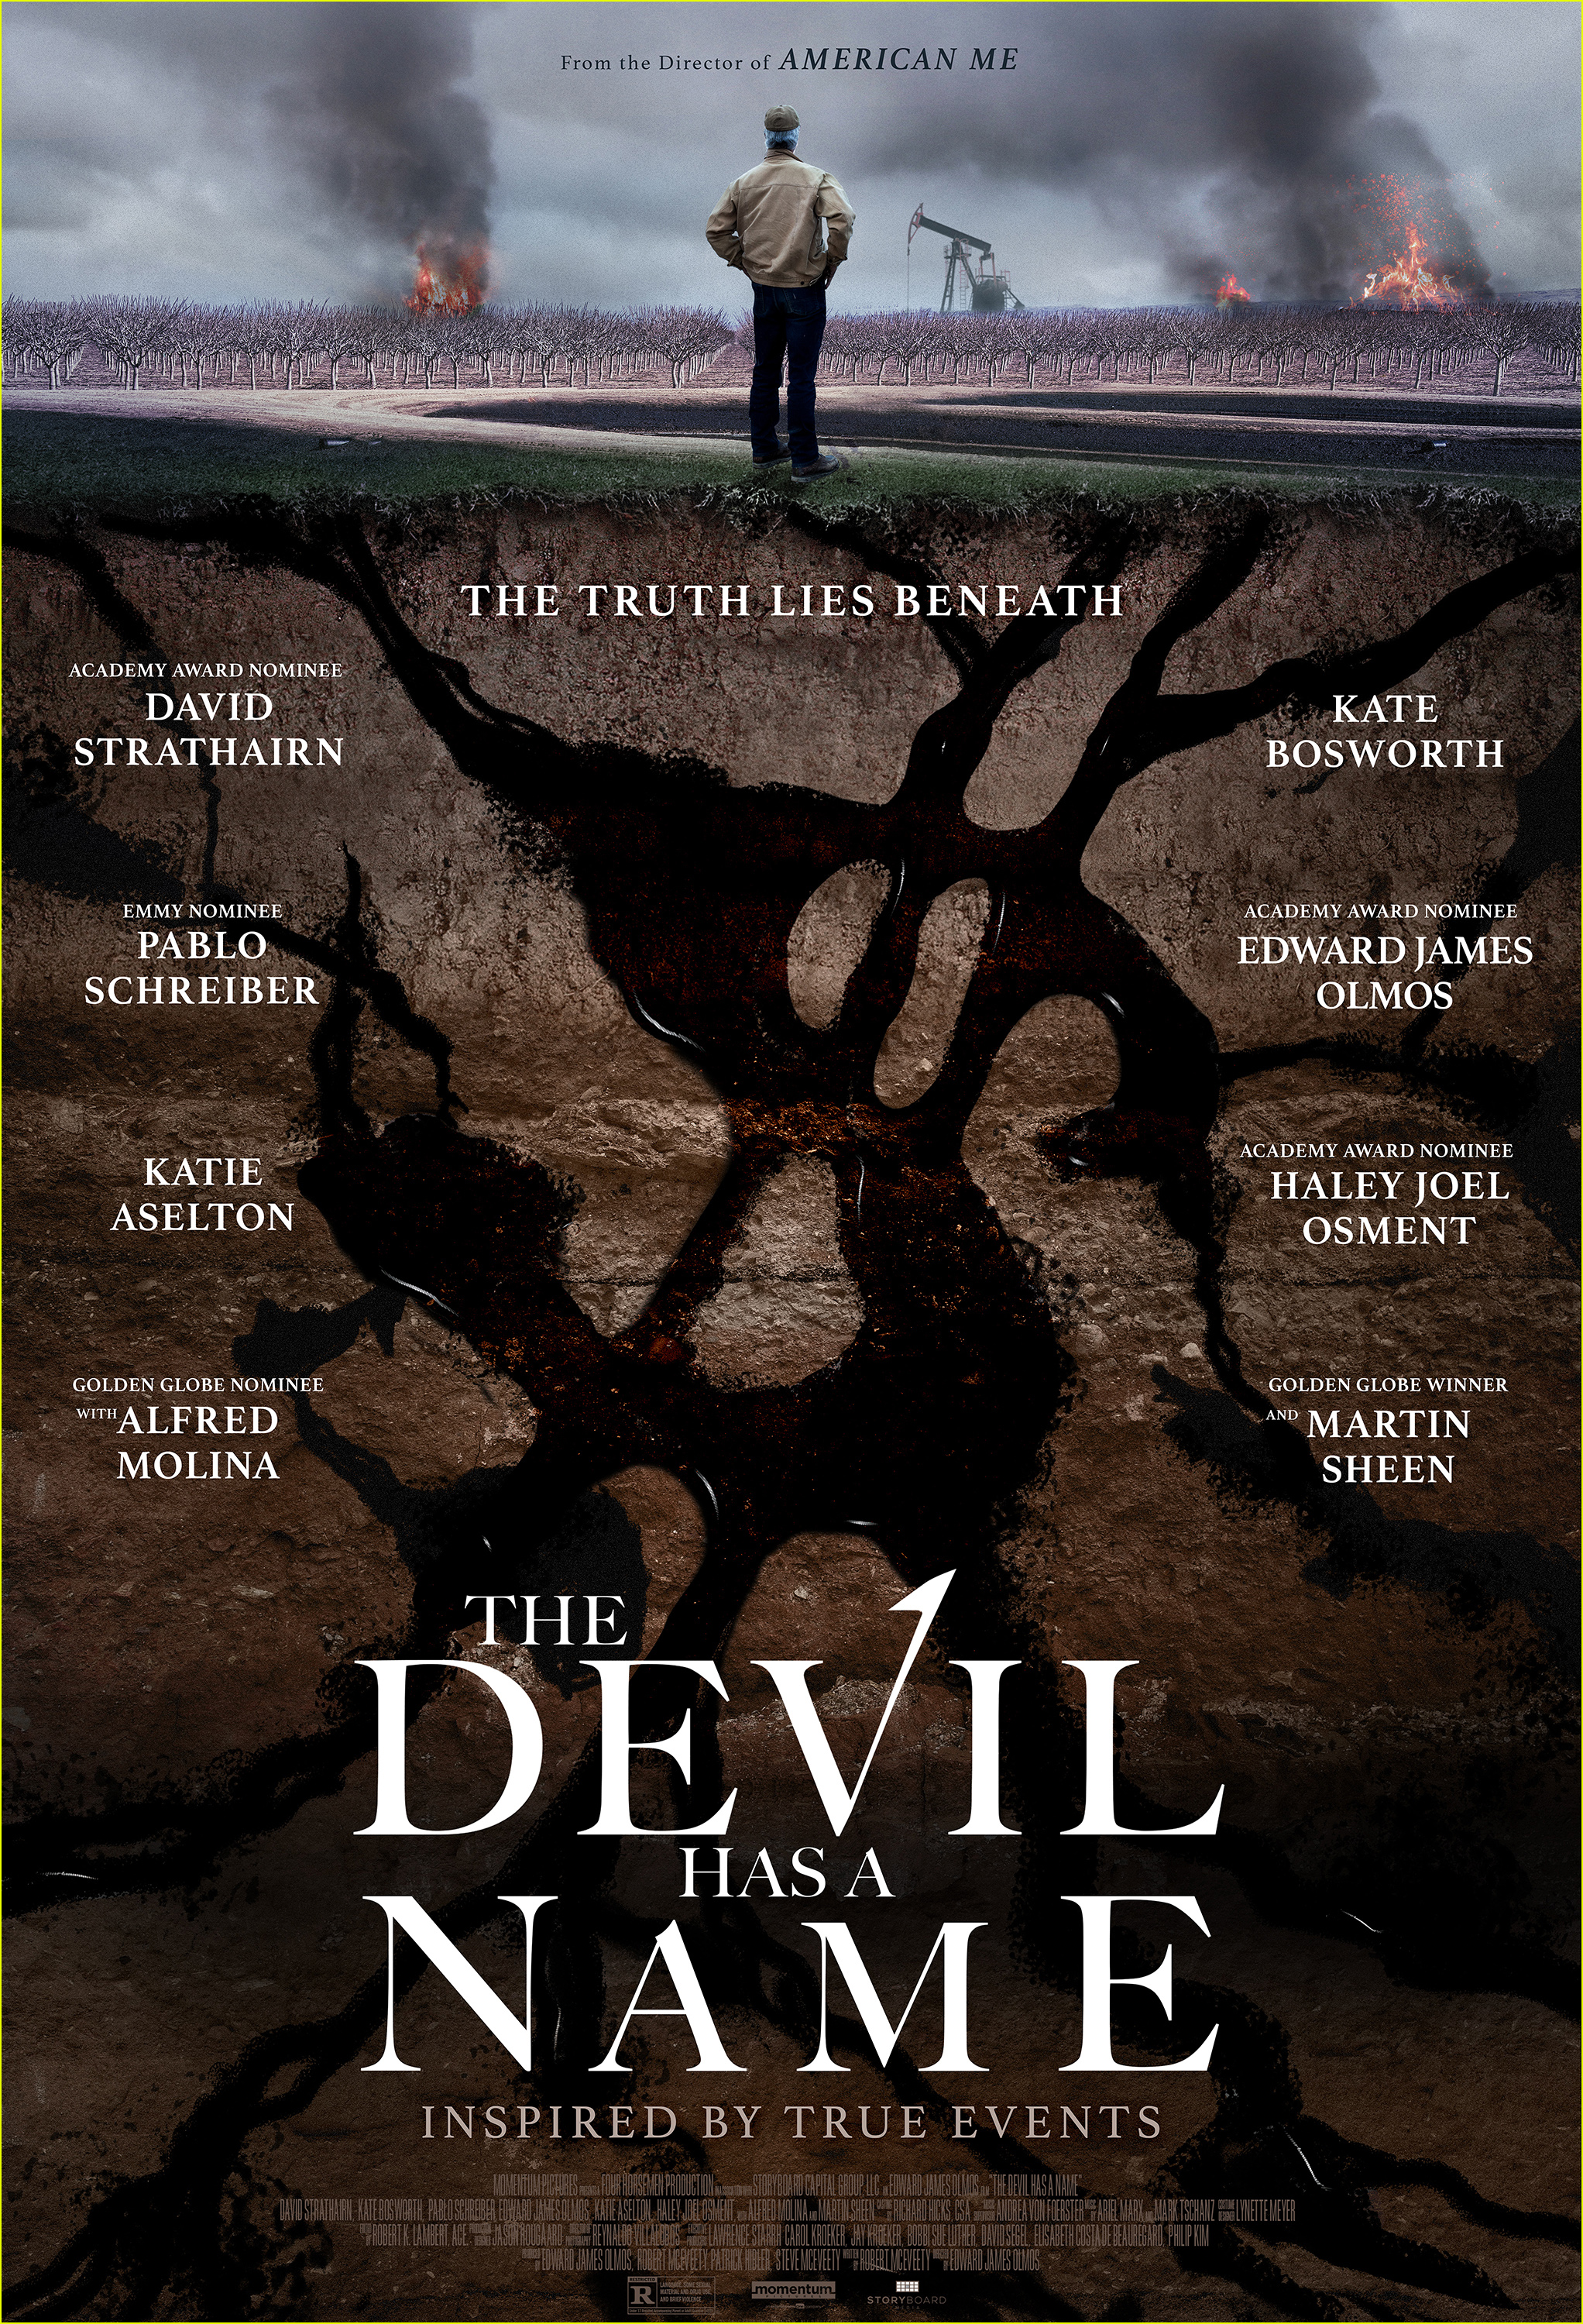 the devil has a name trailer released4484576